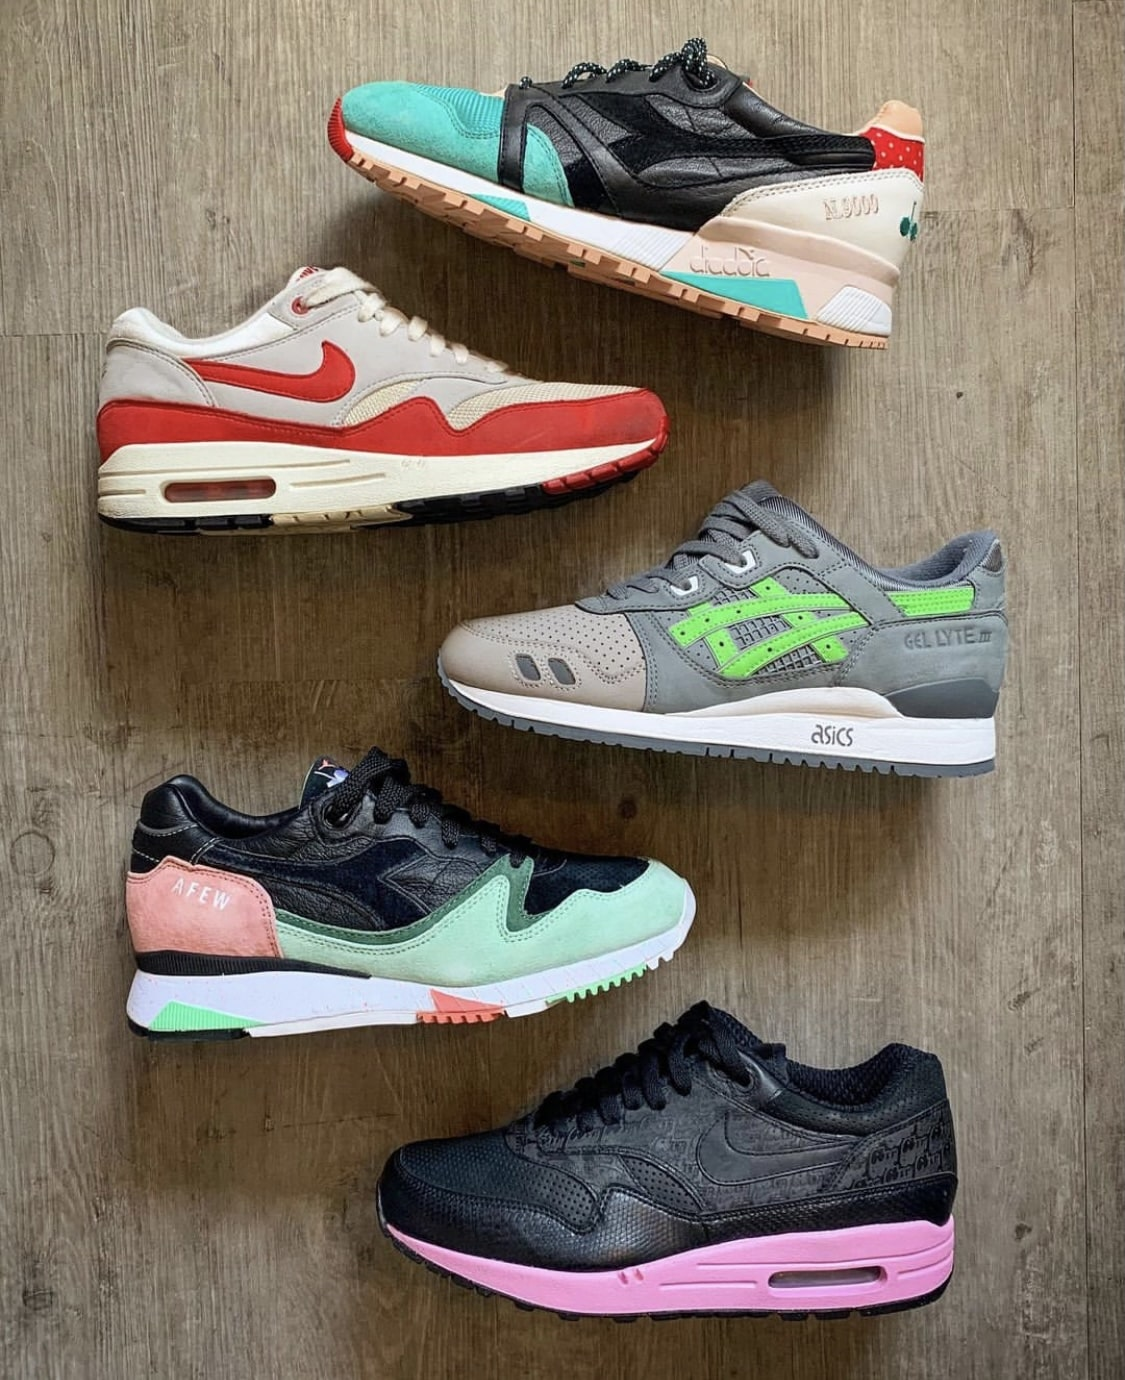 favorite sneakers bij @sjwsneakers - sneakerplaats interview